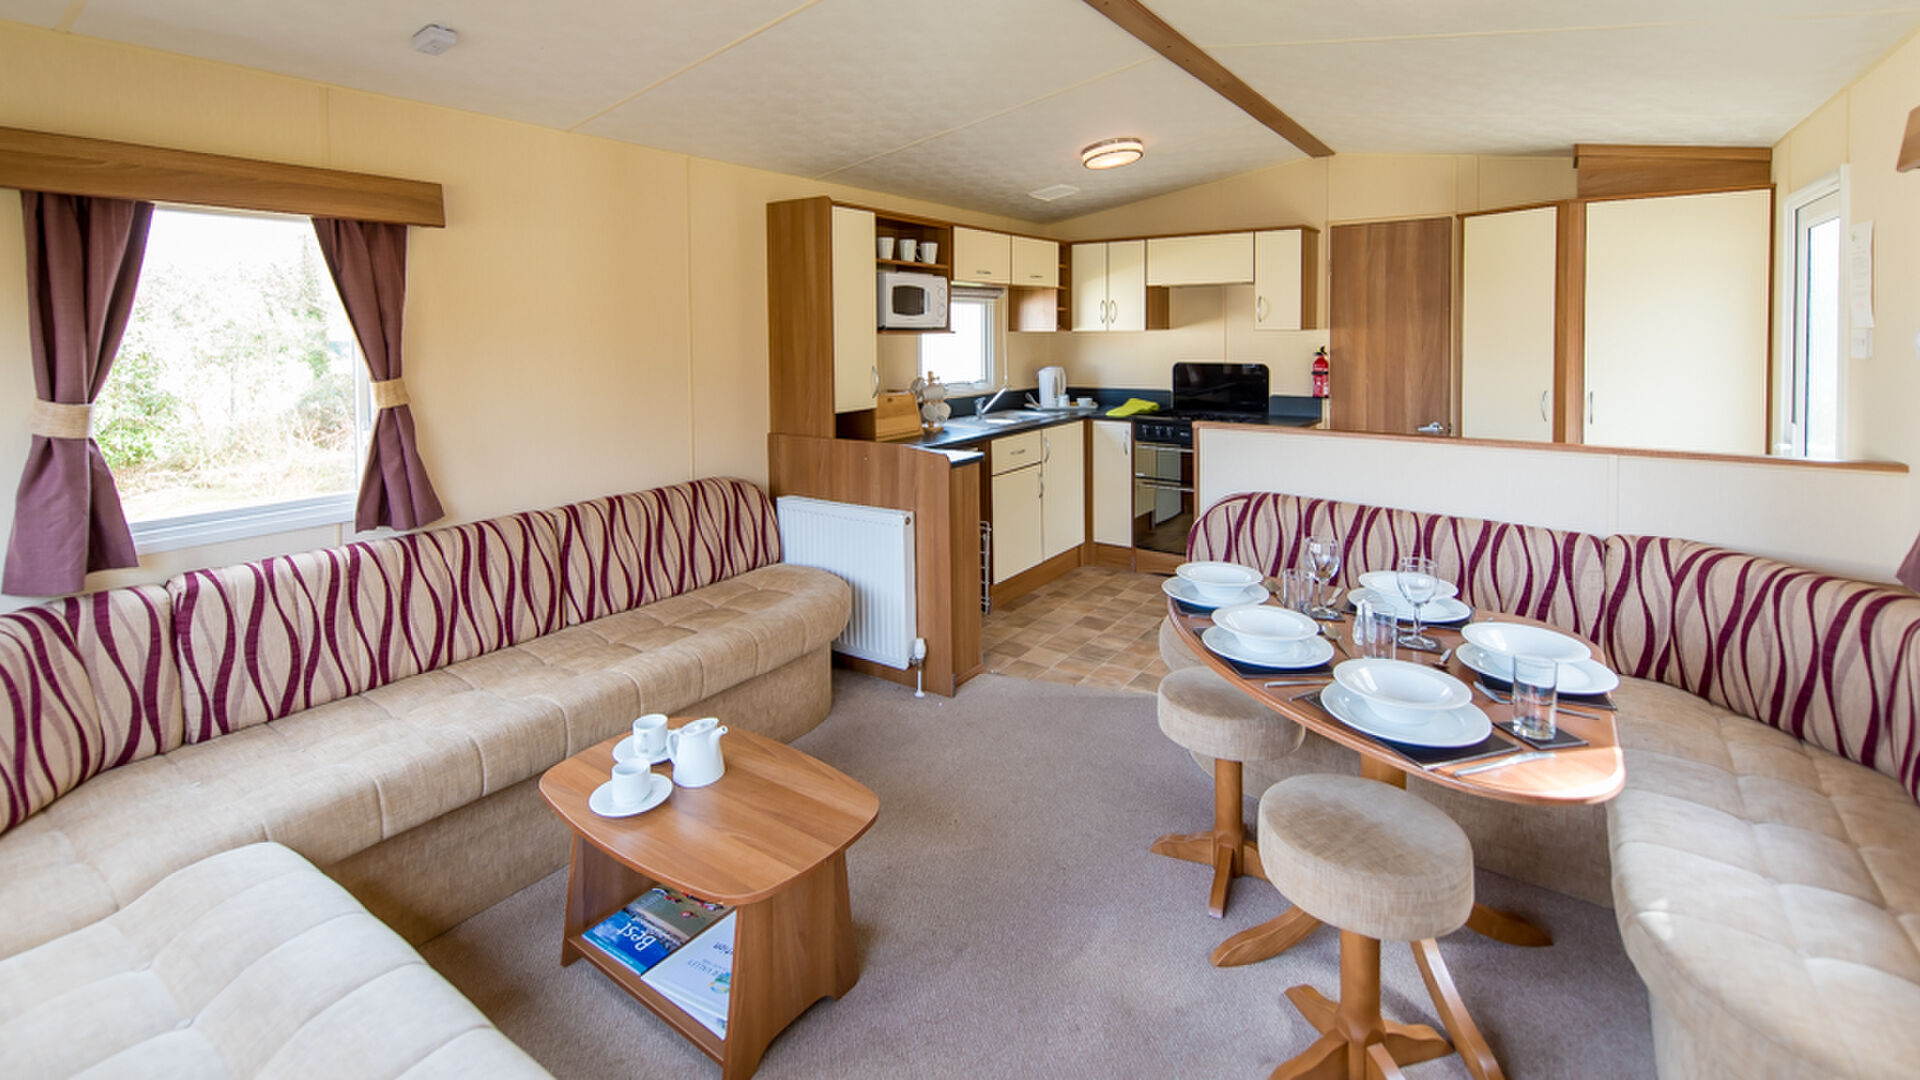 Dog Friendly Holiday Park In Cornwall With Caravans And Lodges